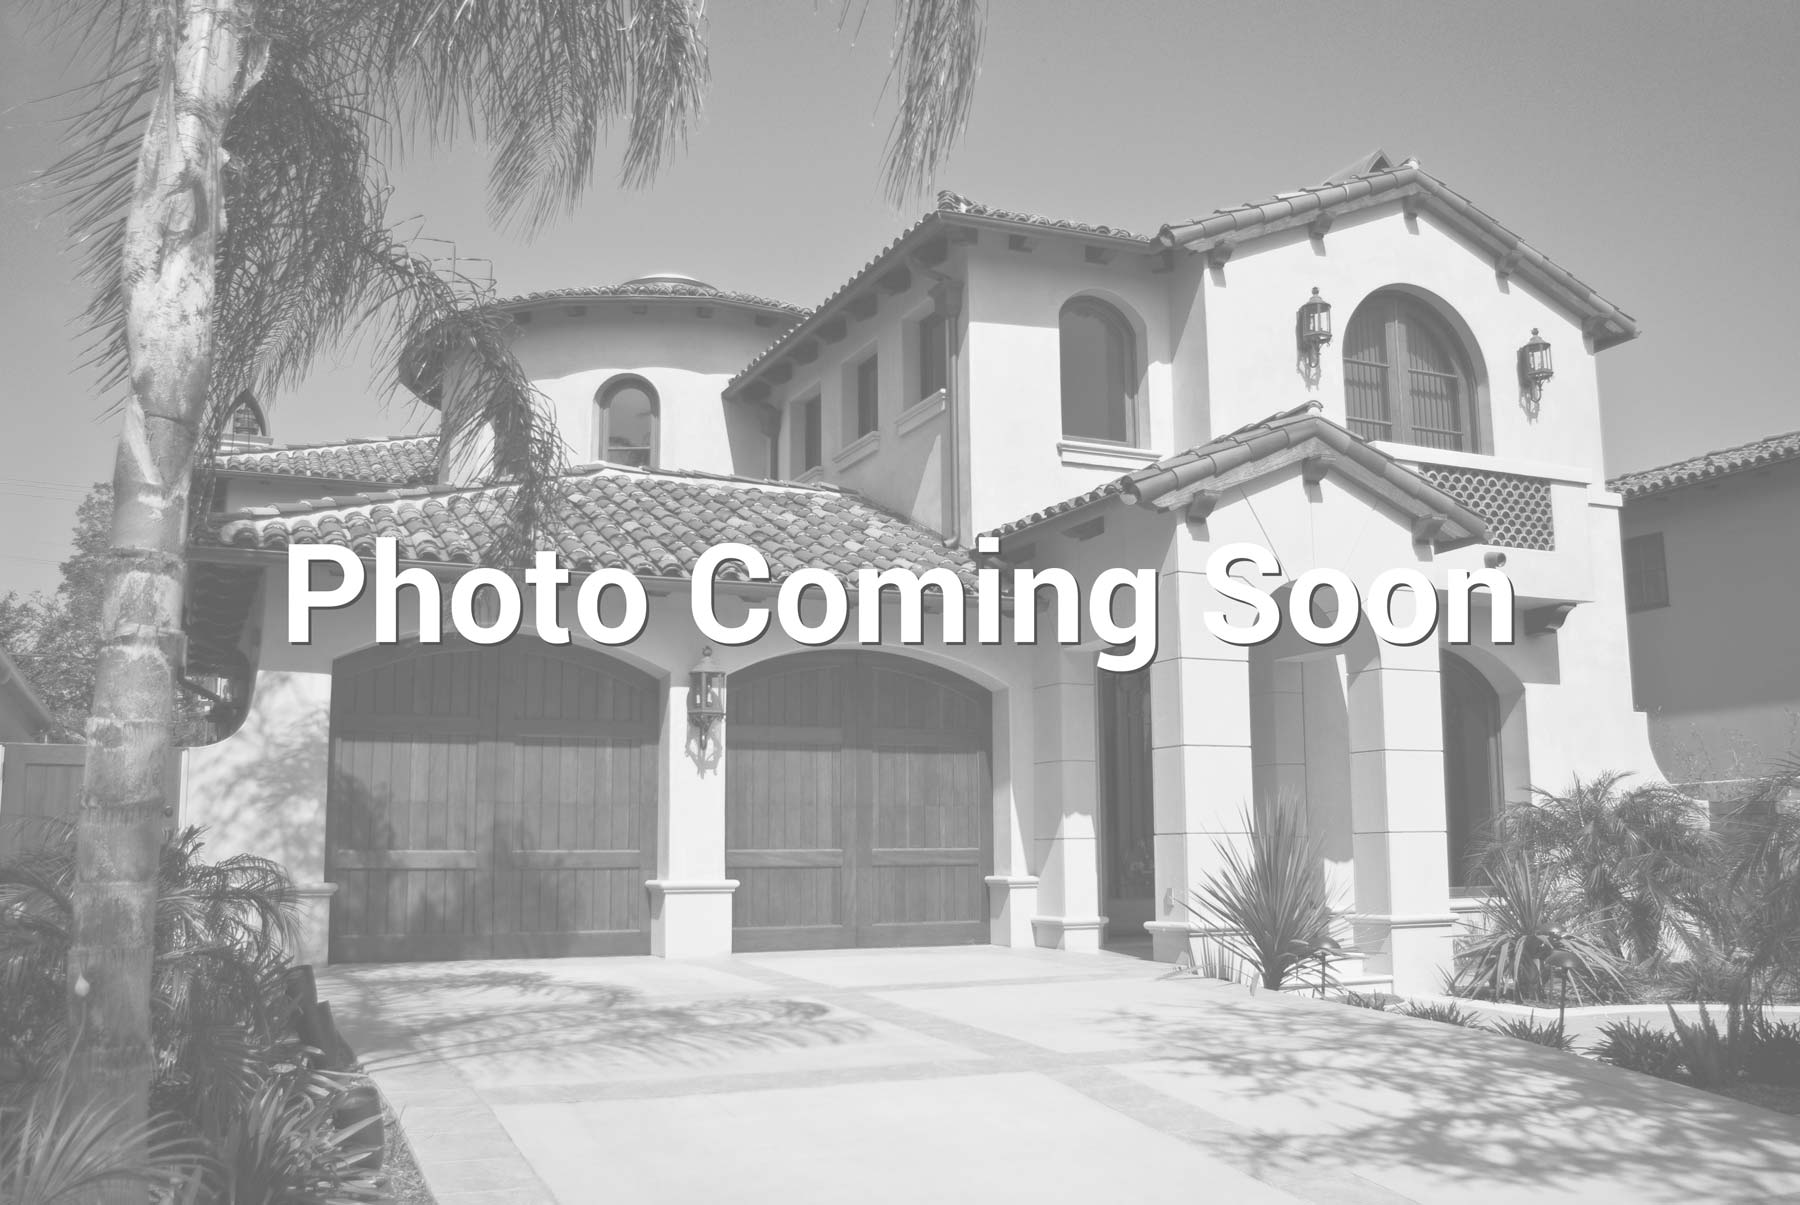 $850,000 - 5Br/3Ba -  for Sale in North Penaquitos, San Diego